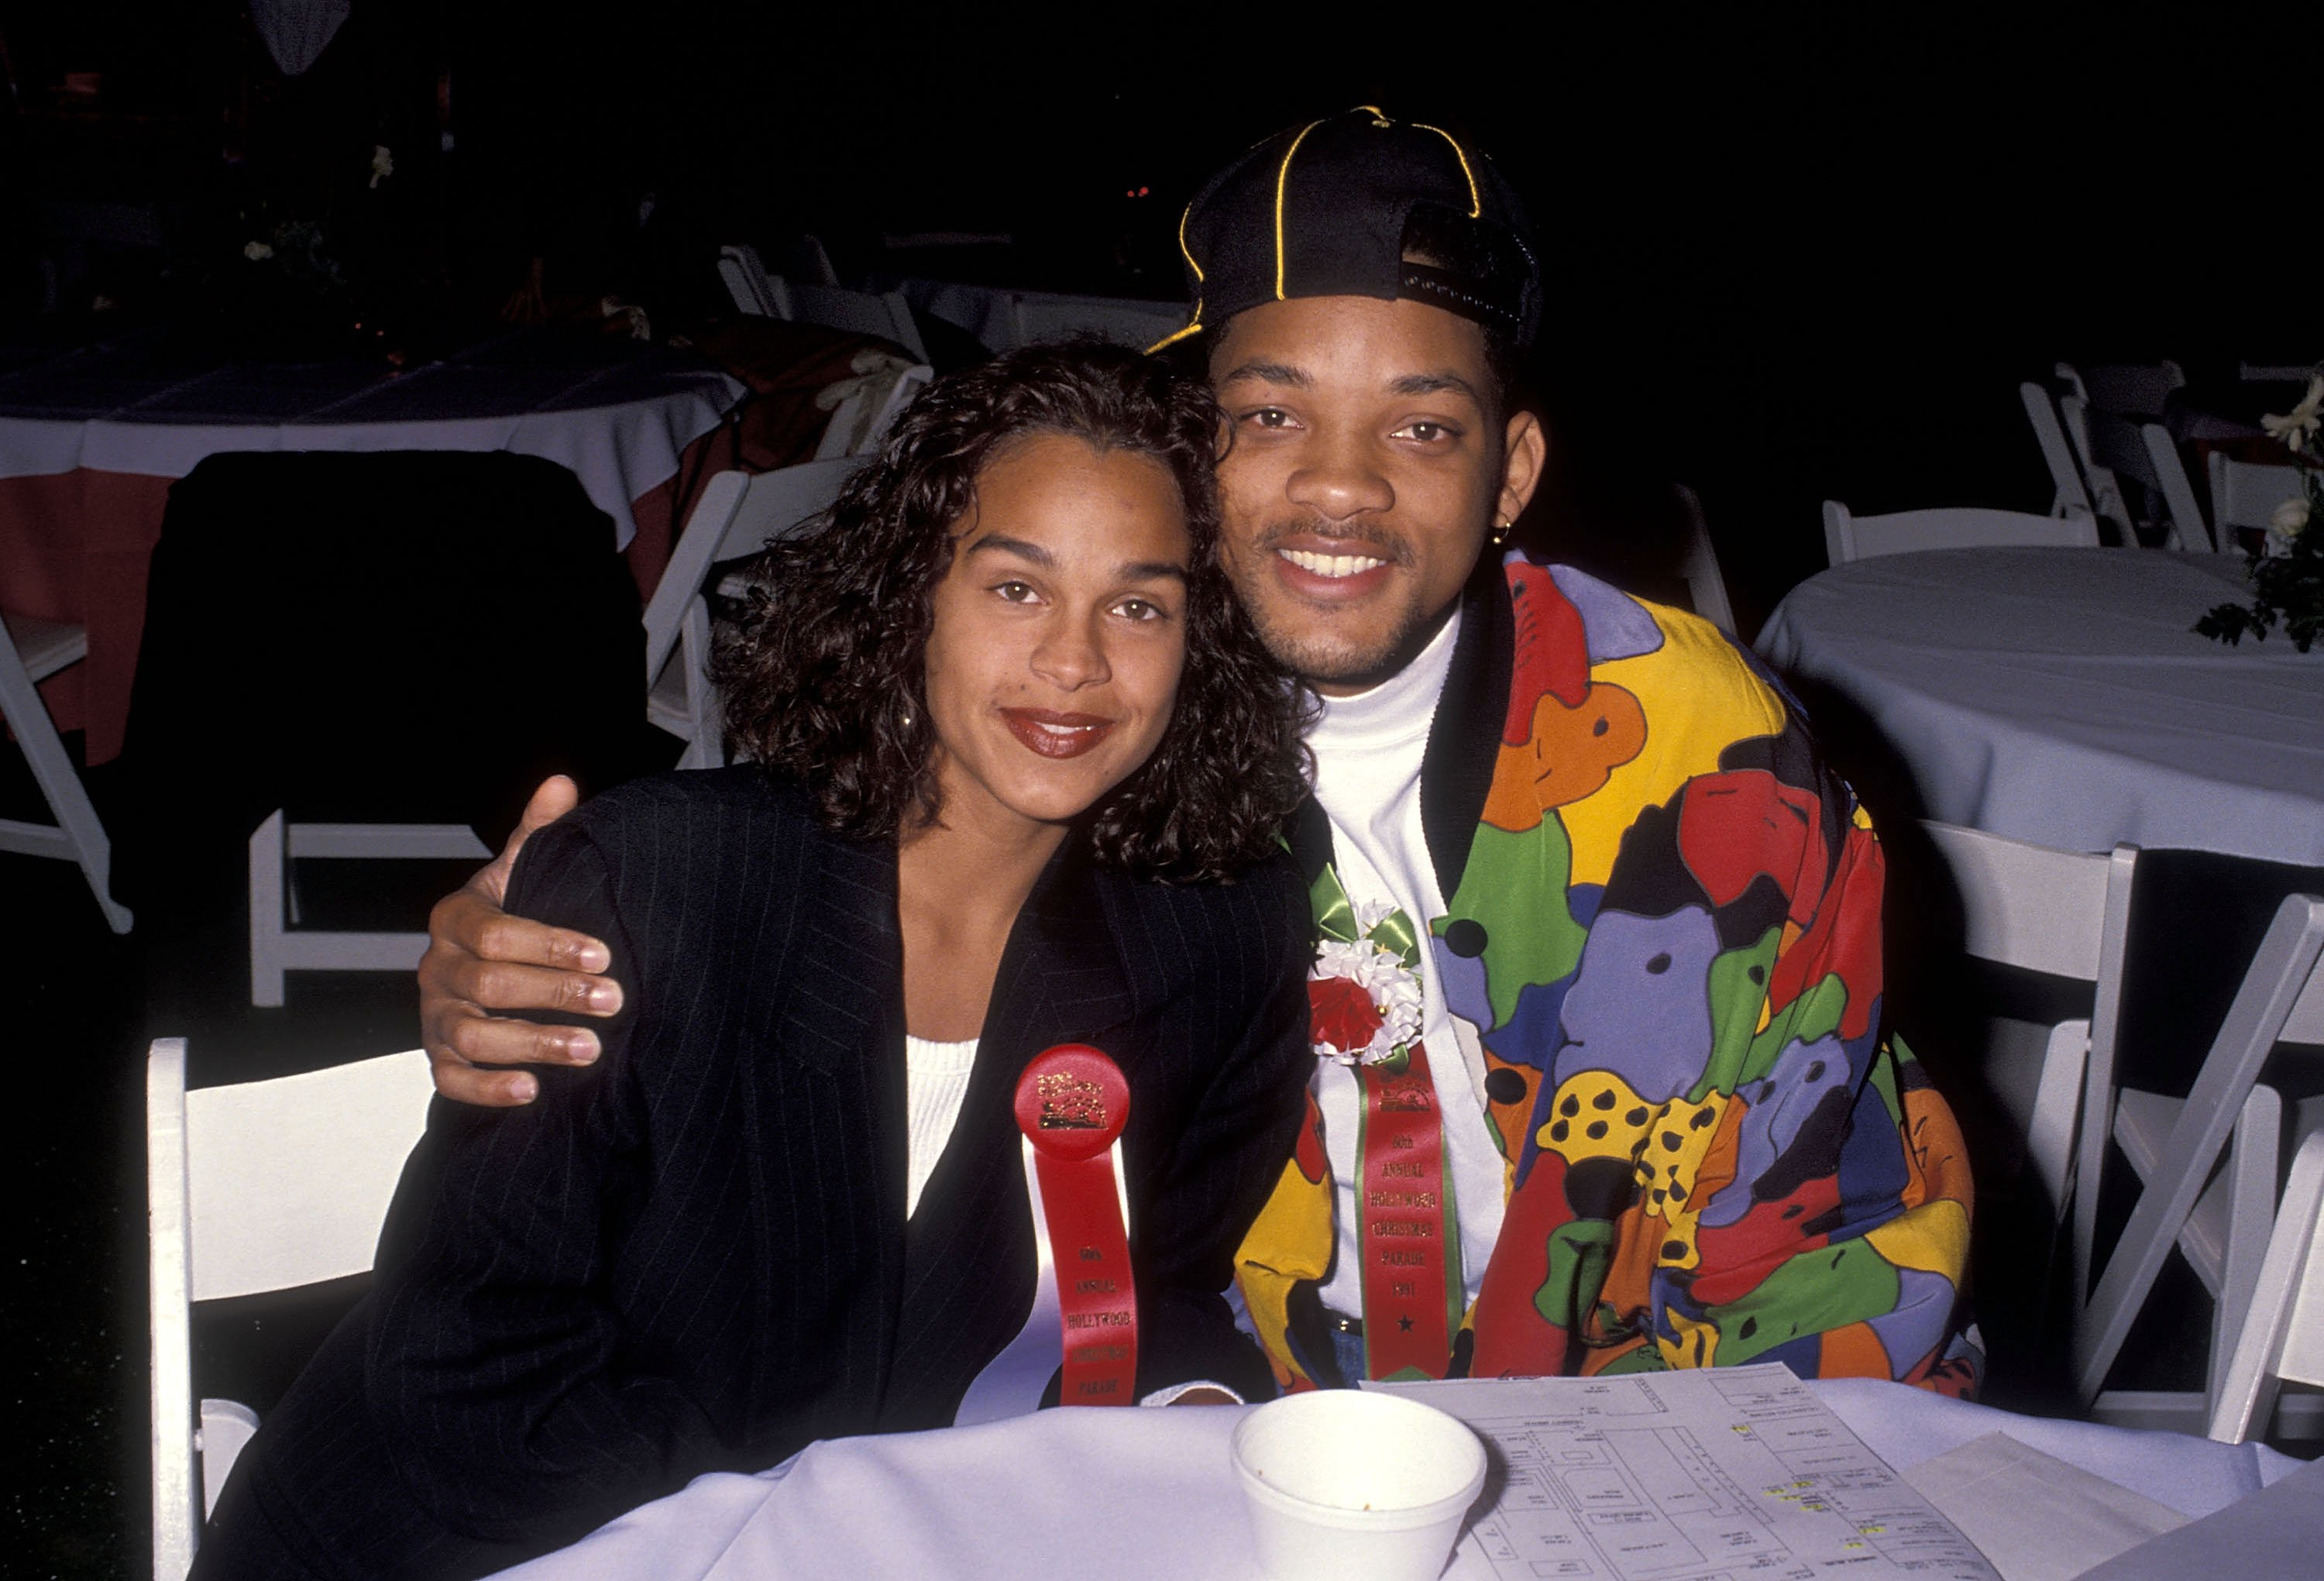 Will Smith and Sheree Zampino at the 60th Annual Hollywood Christmas Parade on December 1, 1991 at KTLA Studios in Hollywood, California.| Source: Getty Images